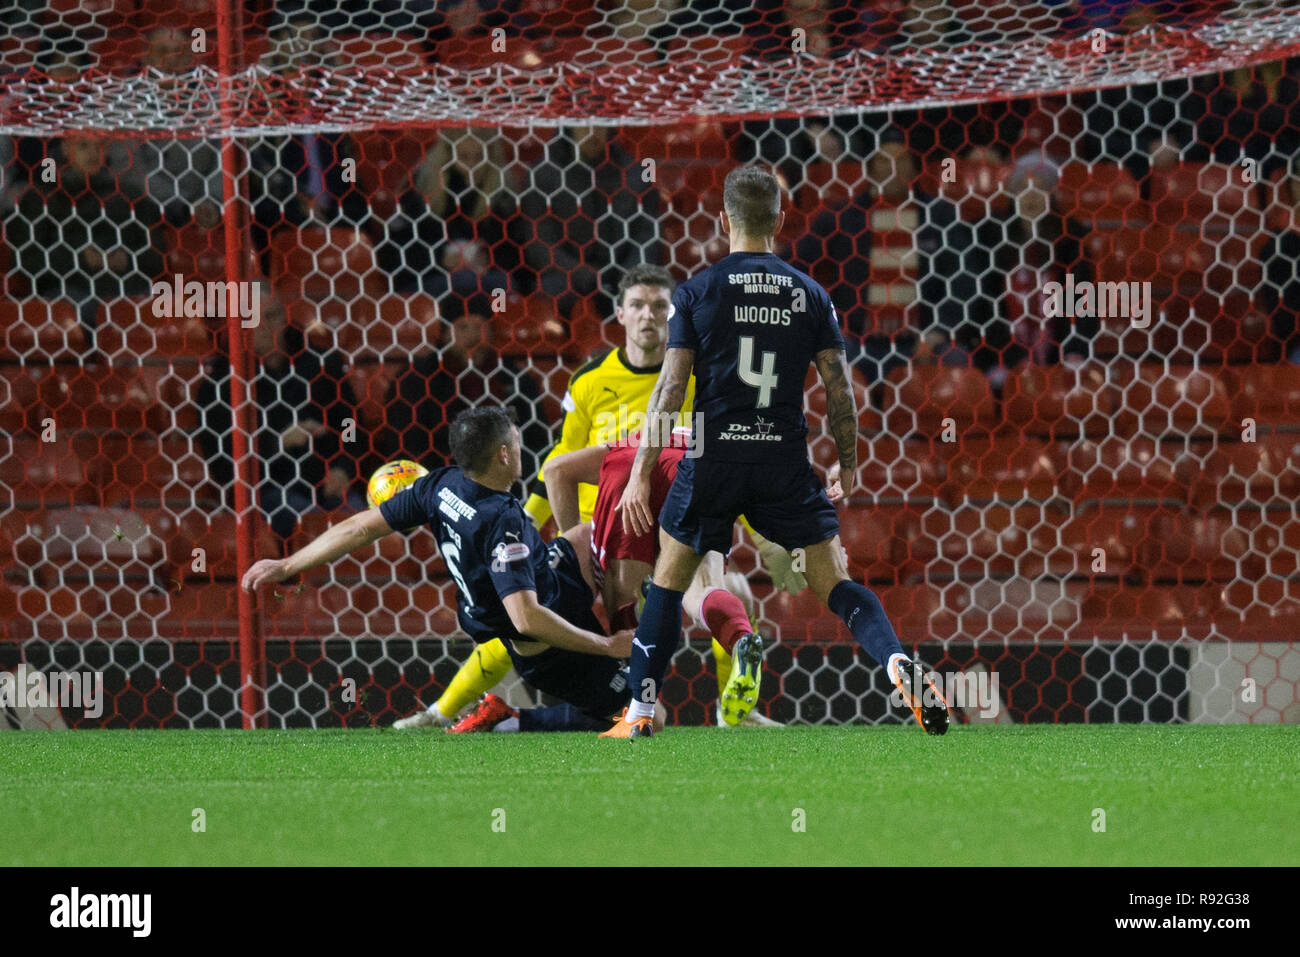 Pittodrie Stadium, Aberdeen, UK. 18th Dec, 2018. Ladbrokes Premiership football, Aberdeen versus Dundee; Sam Cosgrove of Aberdeen shoots and scores for 1-0 in the 15th minute Credit: Action Plus Sports/Alamy Live News - Stock Image